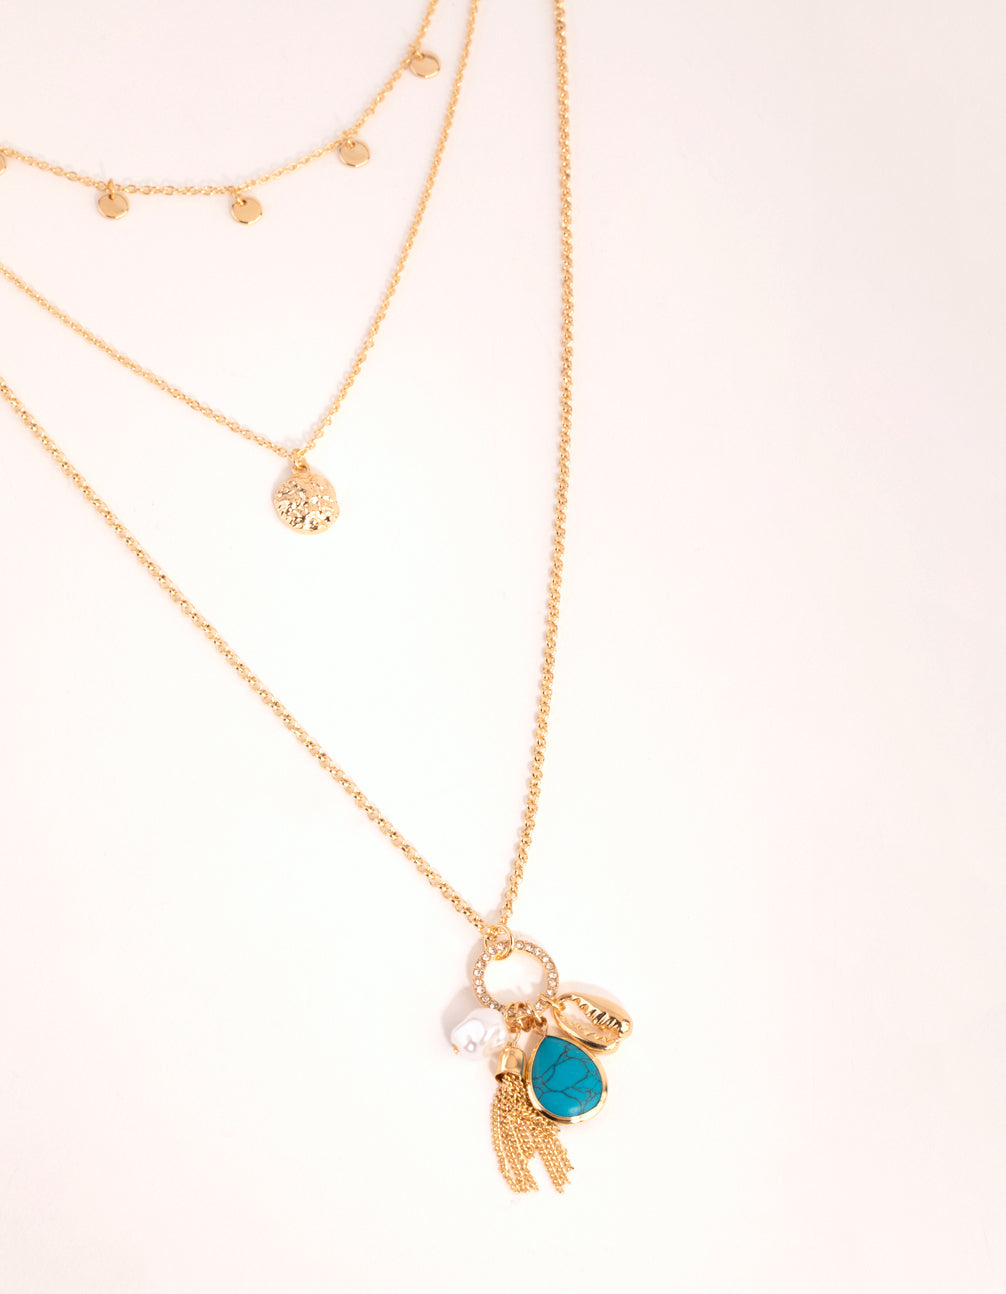 Gold Disc and Charm Layered Necklace